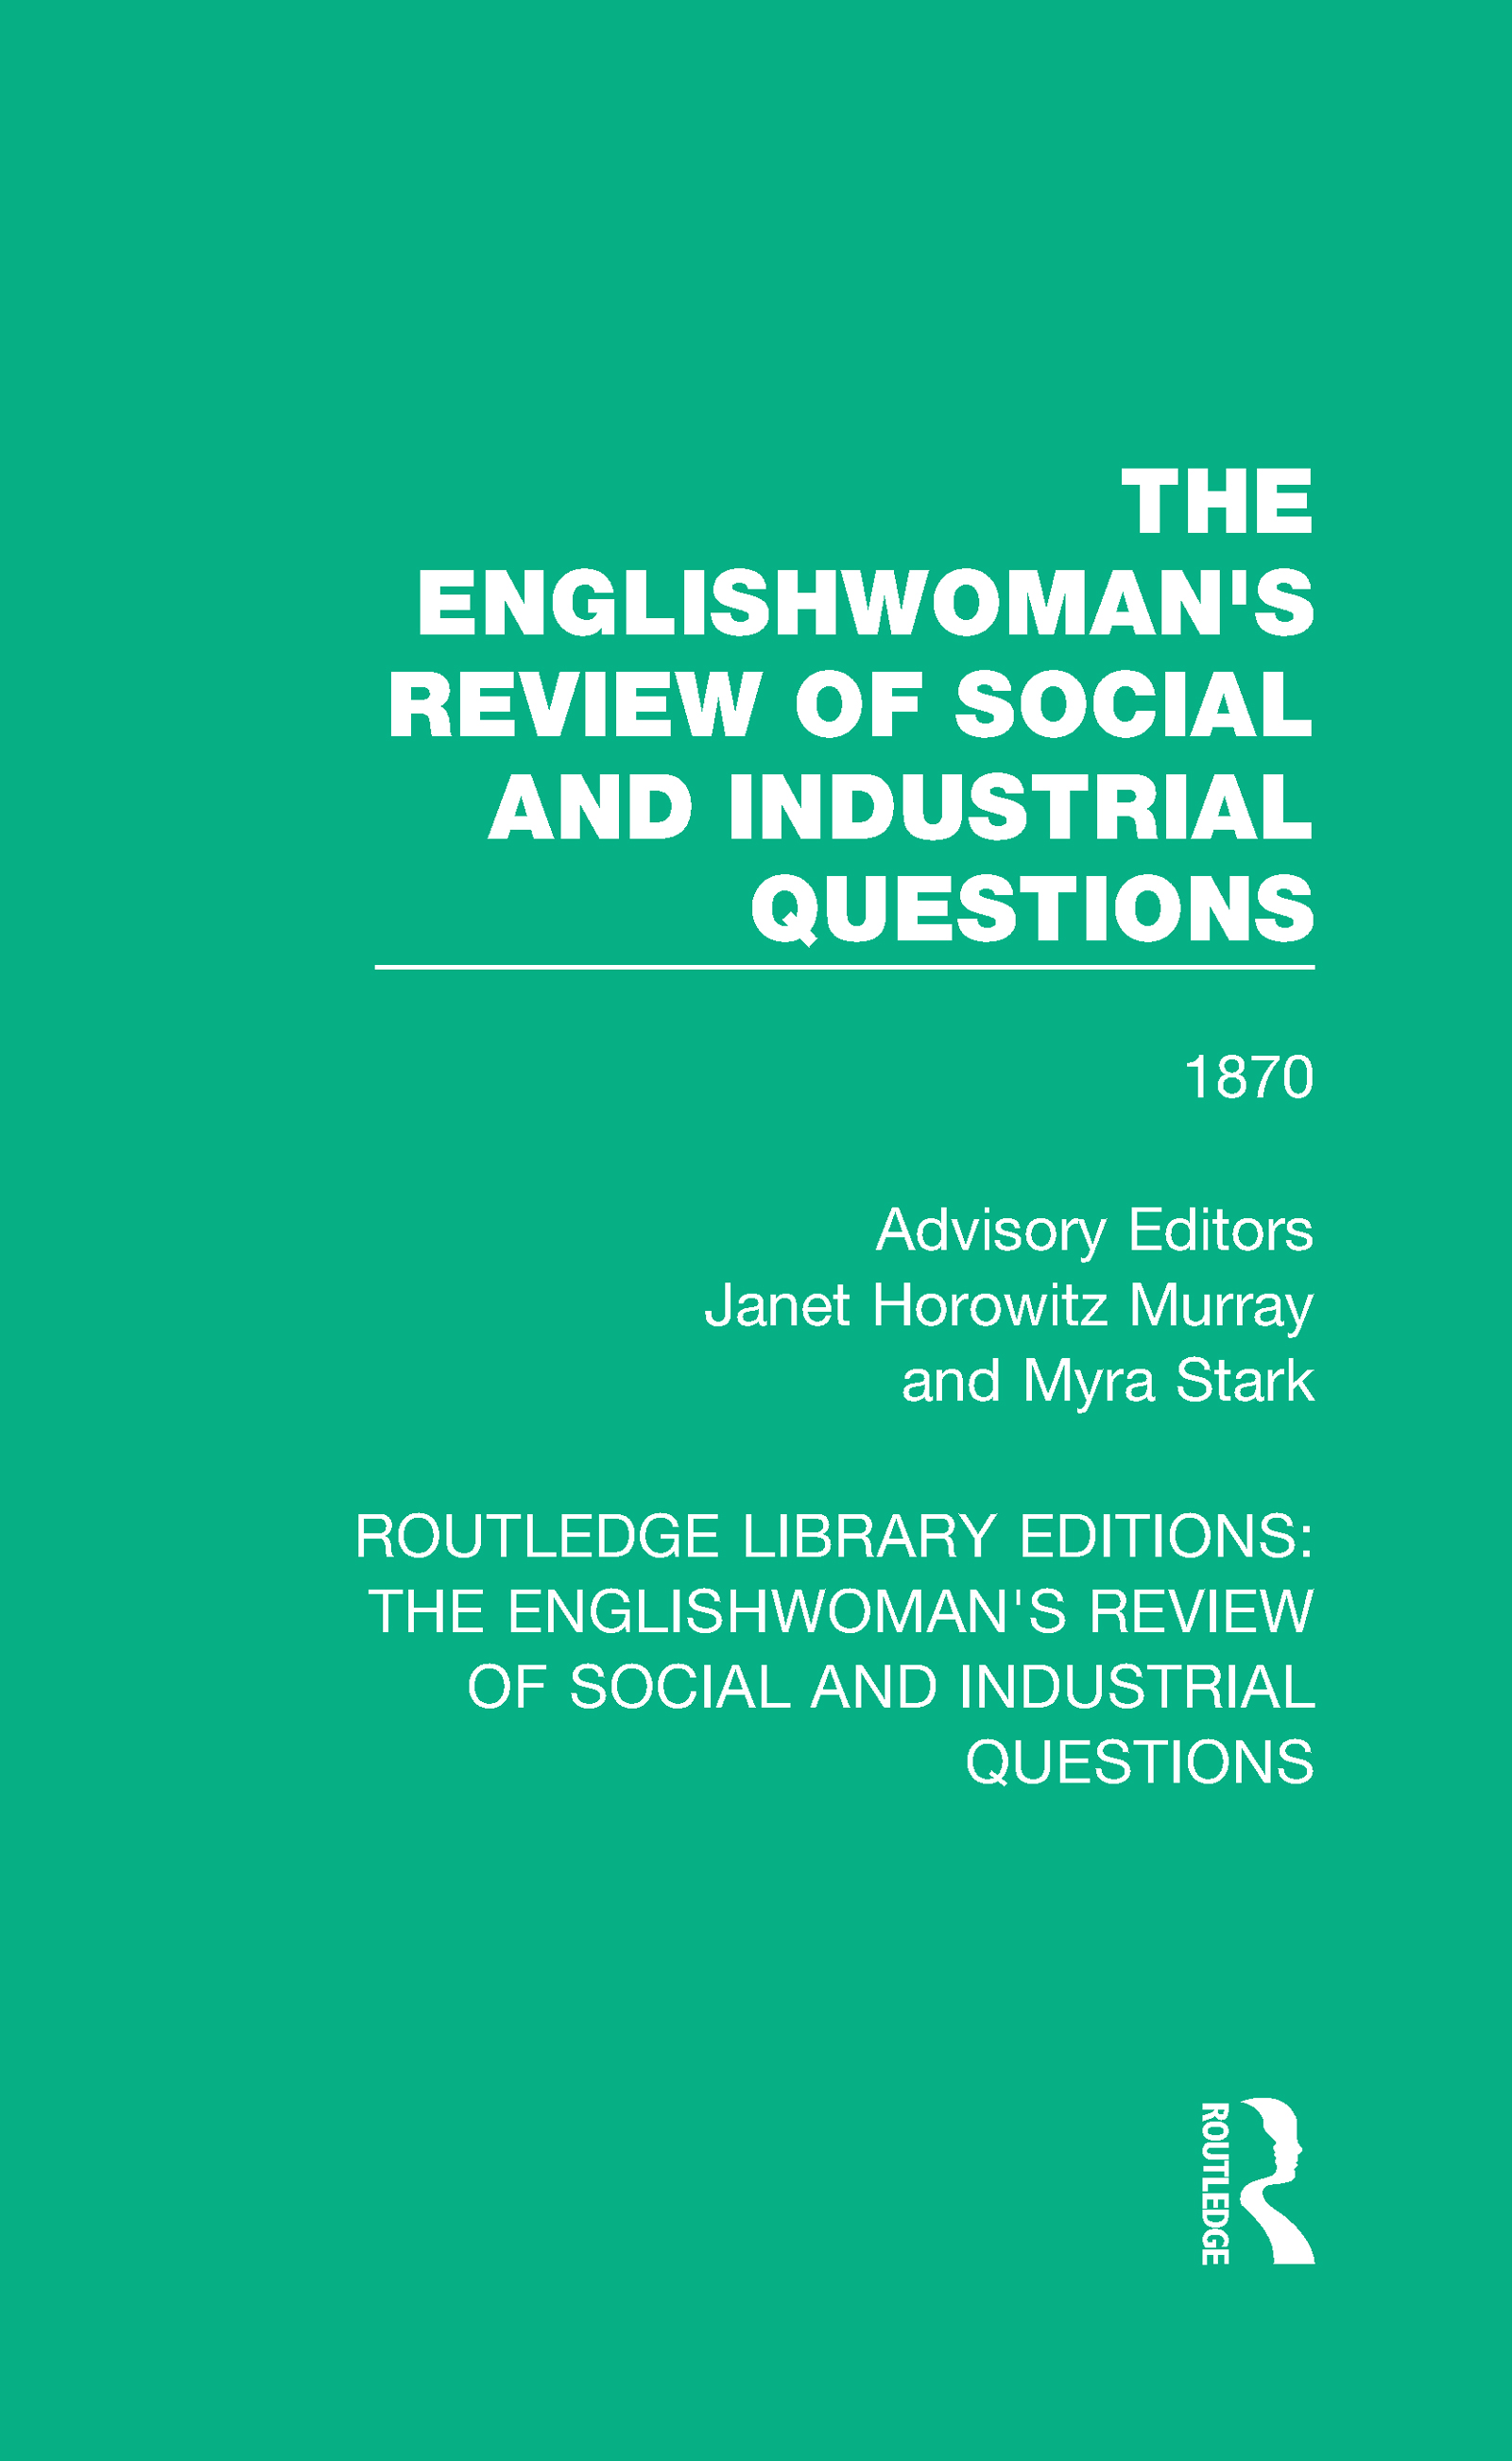 The Englishwoman's Review of Social and Industrial Questions: 1870 book cover